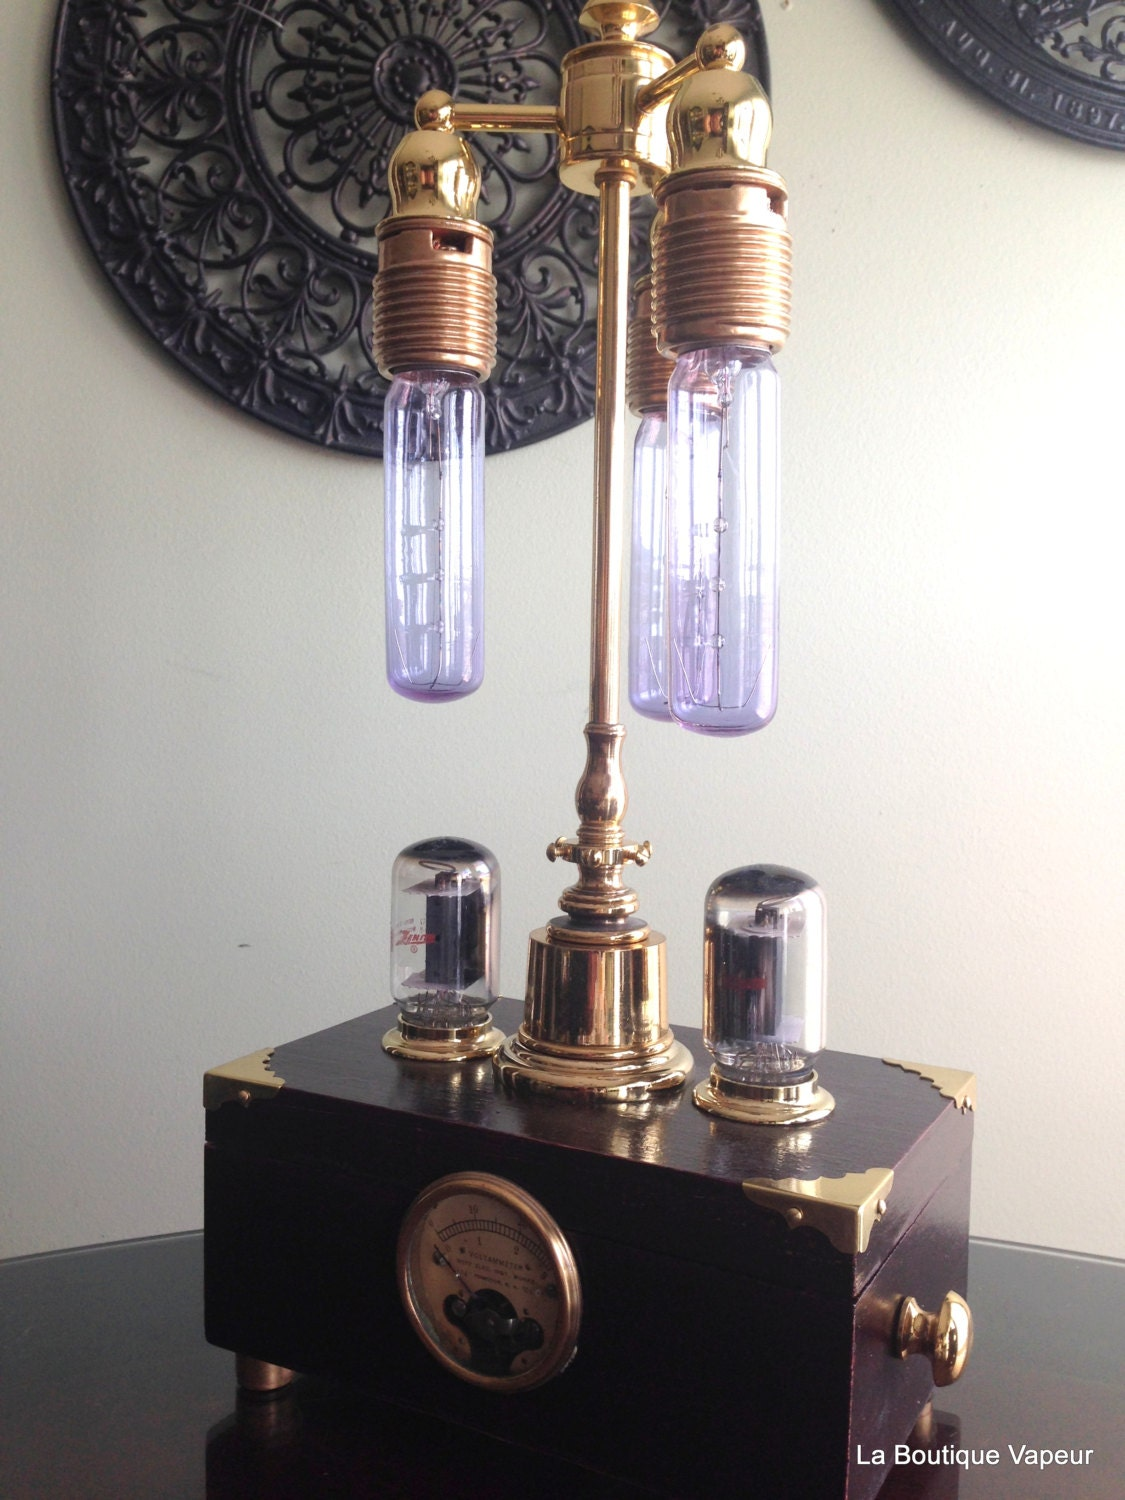 Steampunk Handmade One Of A Kind Lamp With Built In Dimmer